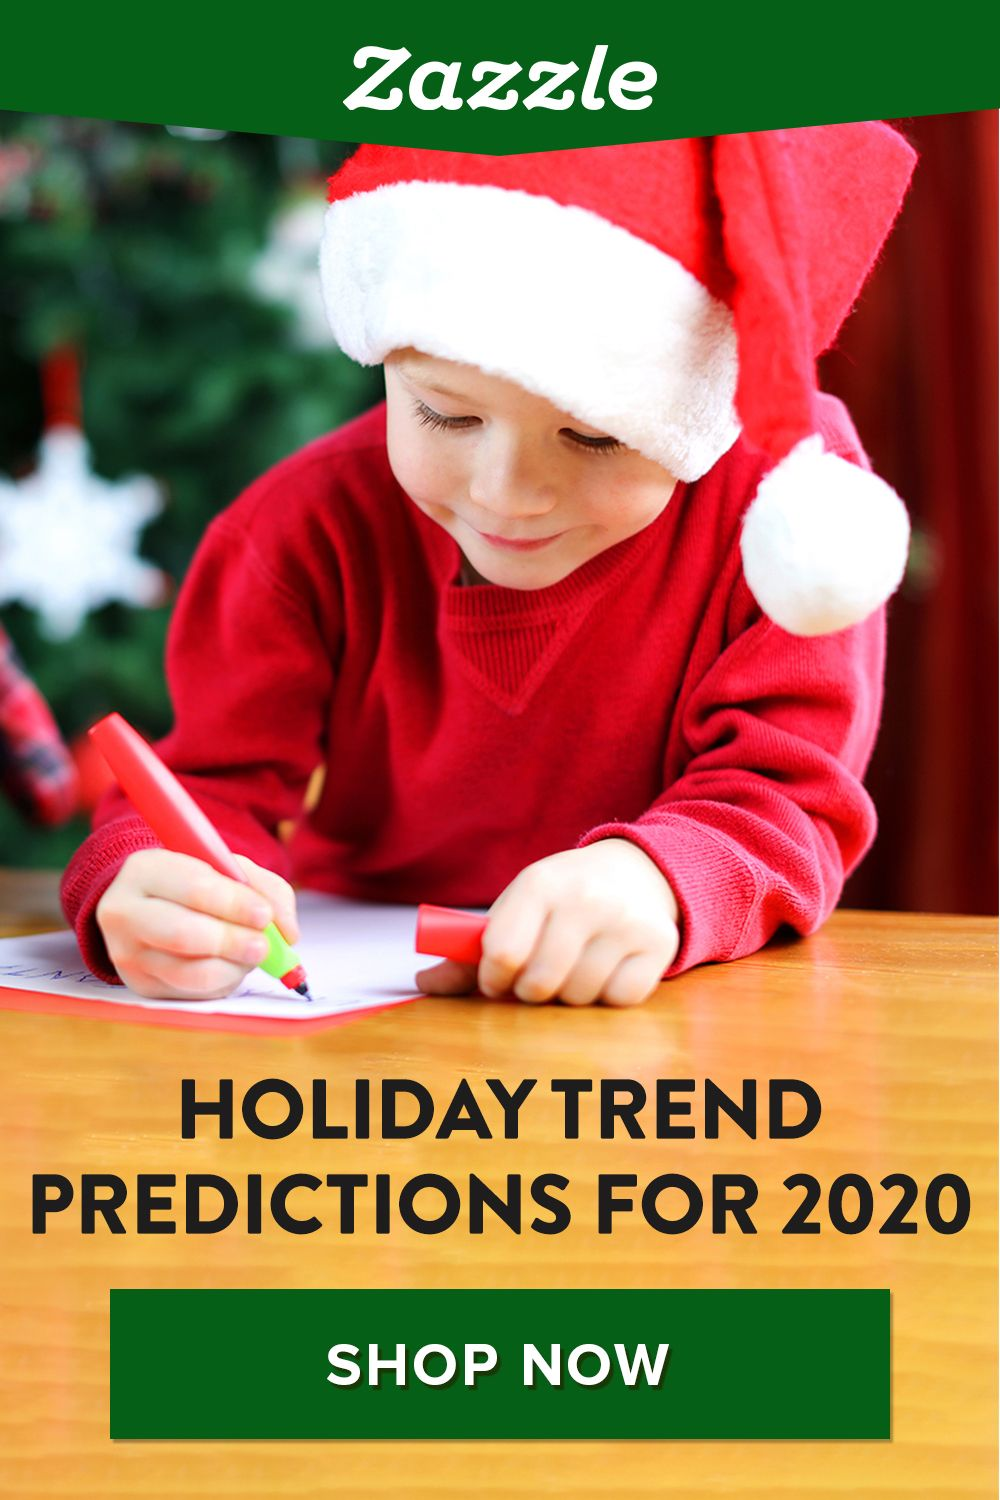 Will we still exchange gifts? Will homes still be decorated with lights and nativity scenes? We're here to answer all those questions and more, with our holiday trend predictions and Christmas gift ideas for 2020. Shop Zazzle for holiday cards, gifts, decor and more.